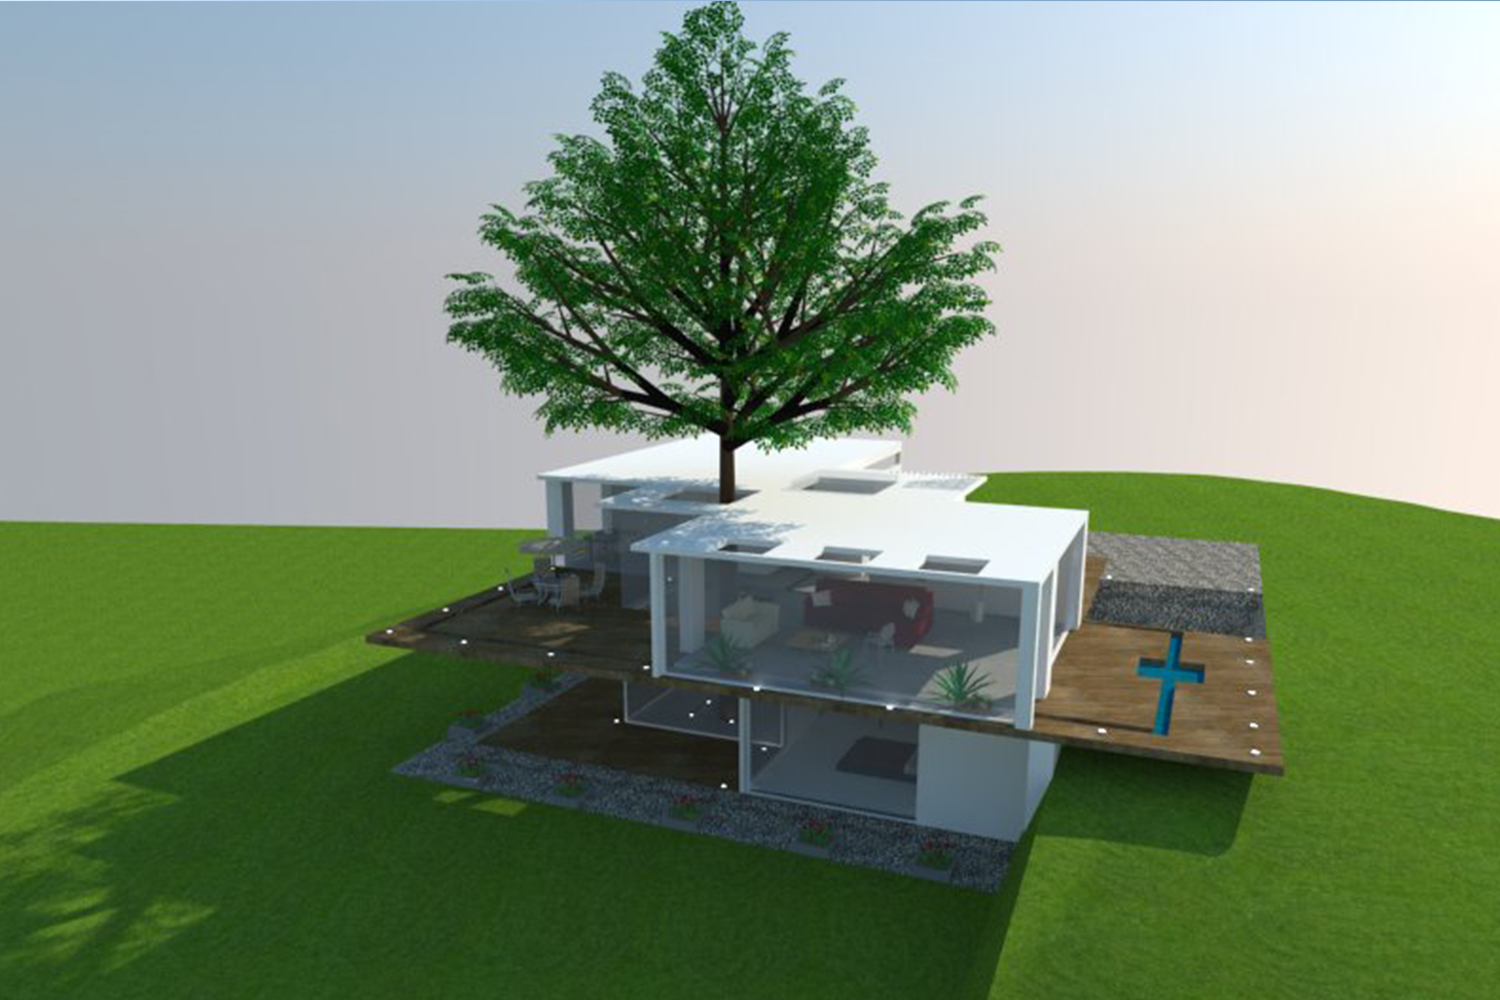 Rural_house_front.png